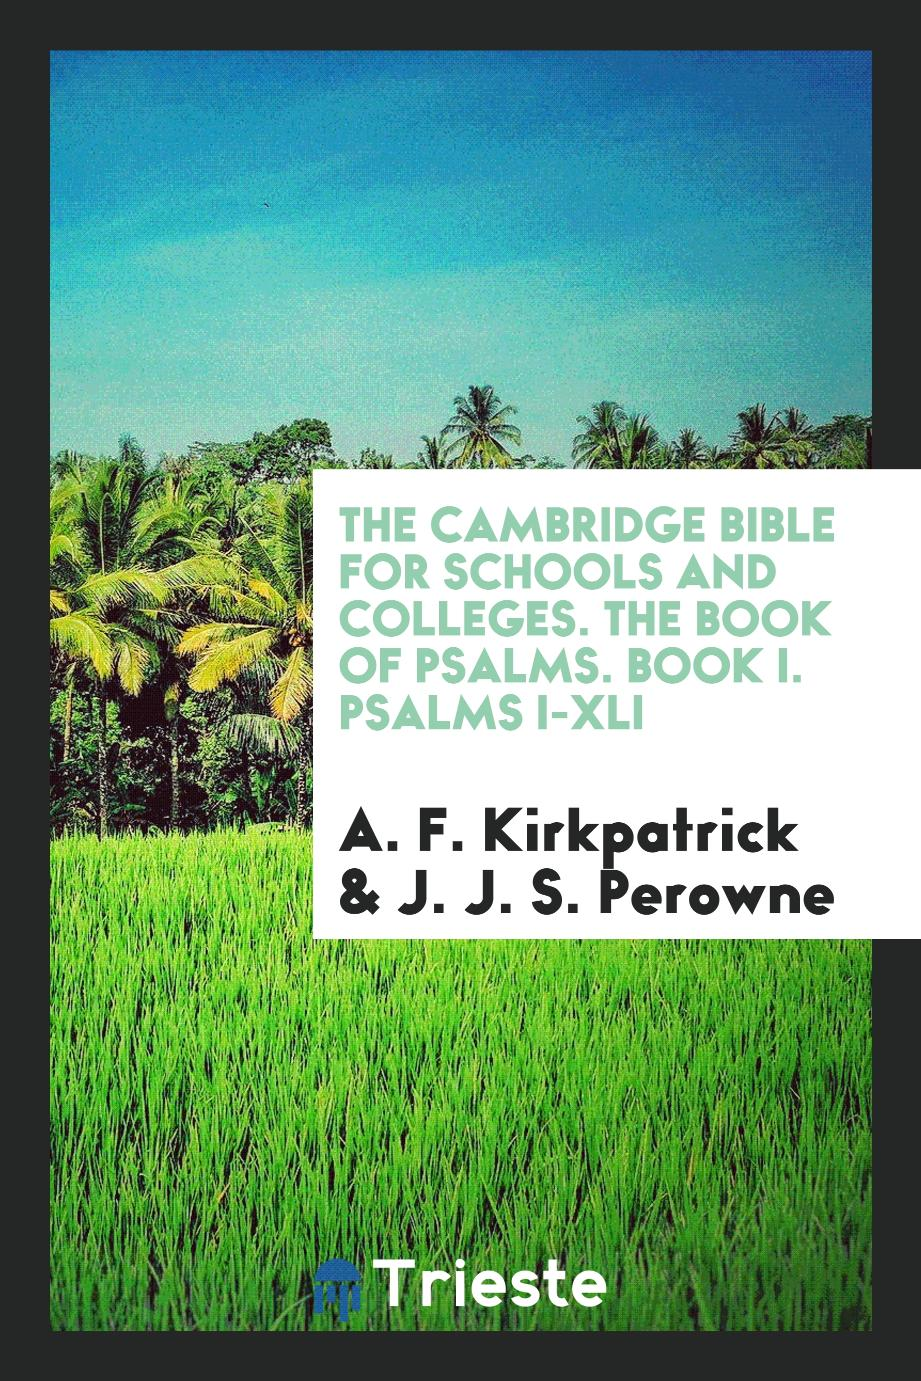 The Cambridge Bible for Schools and Colleges. The Book of Psalms. Book I. Psalms I-XLI